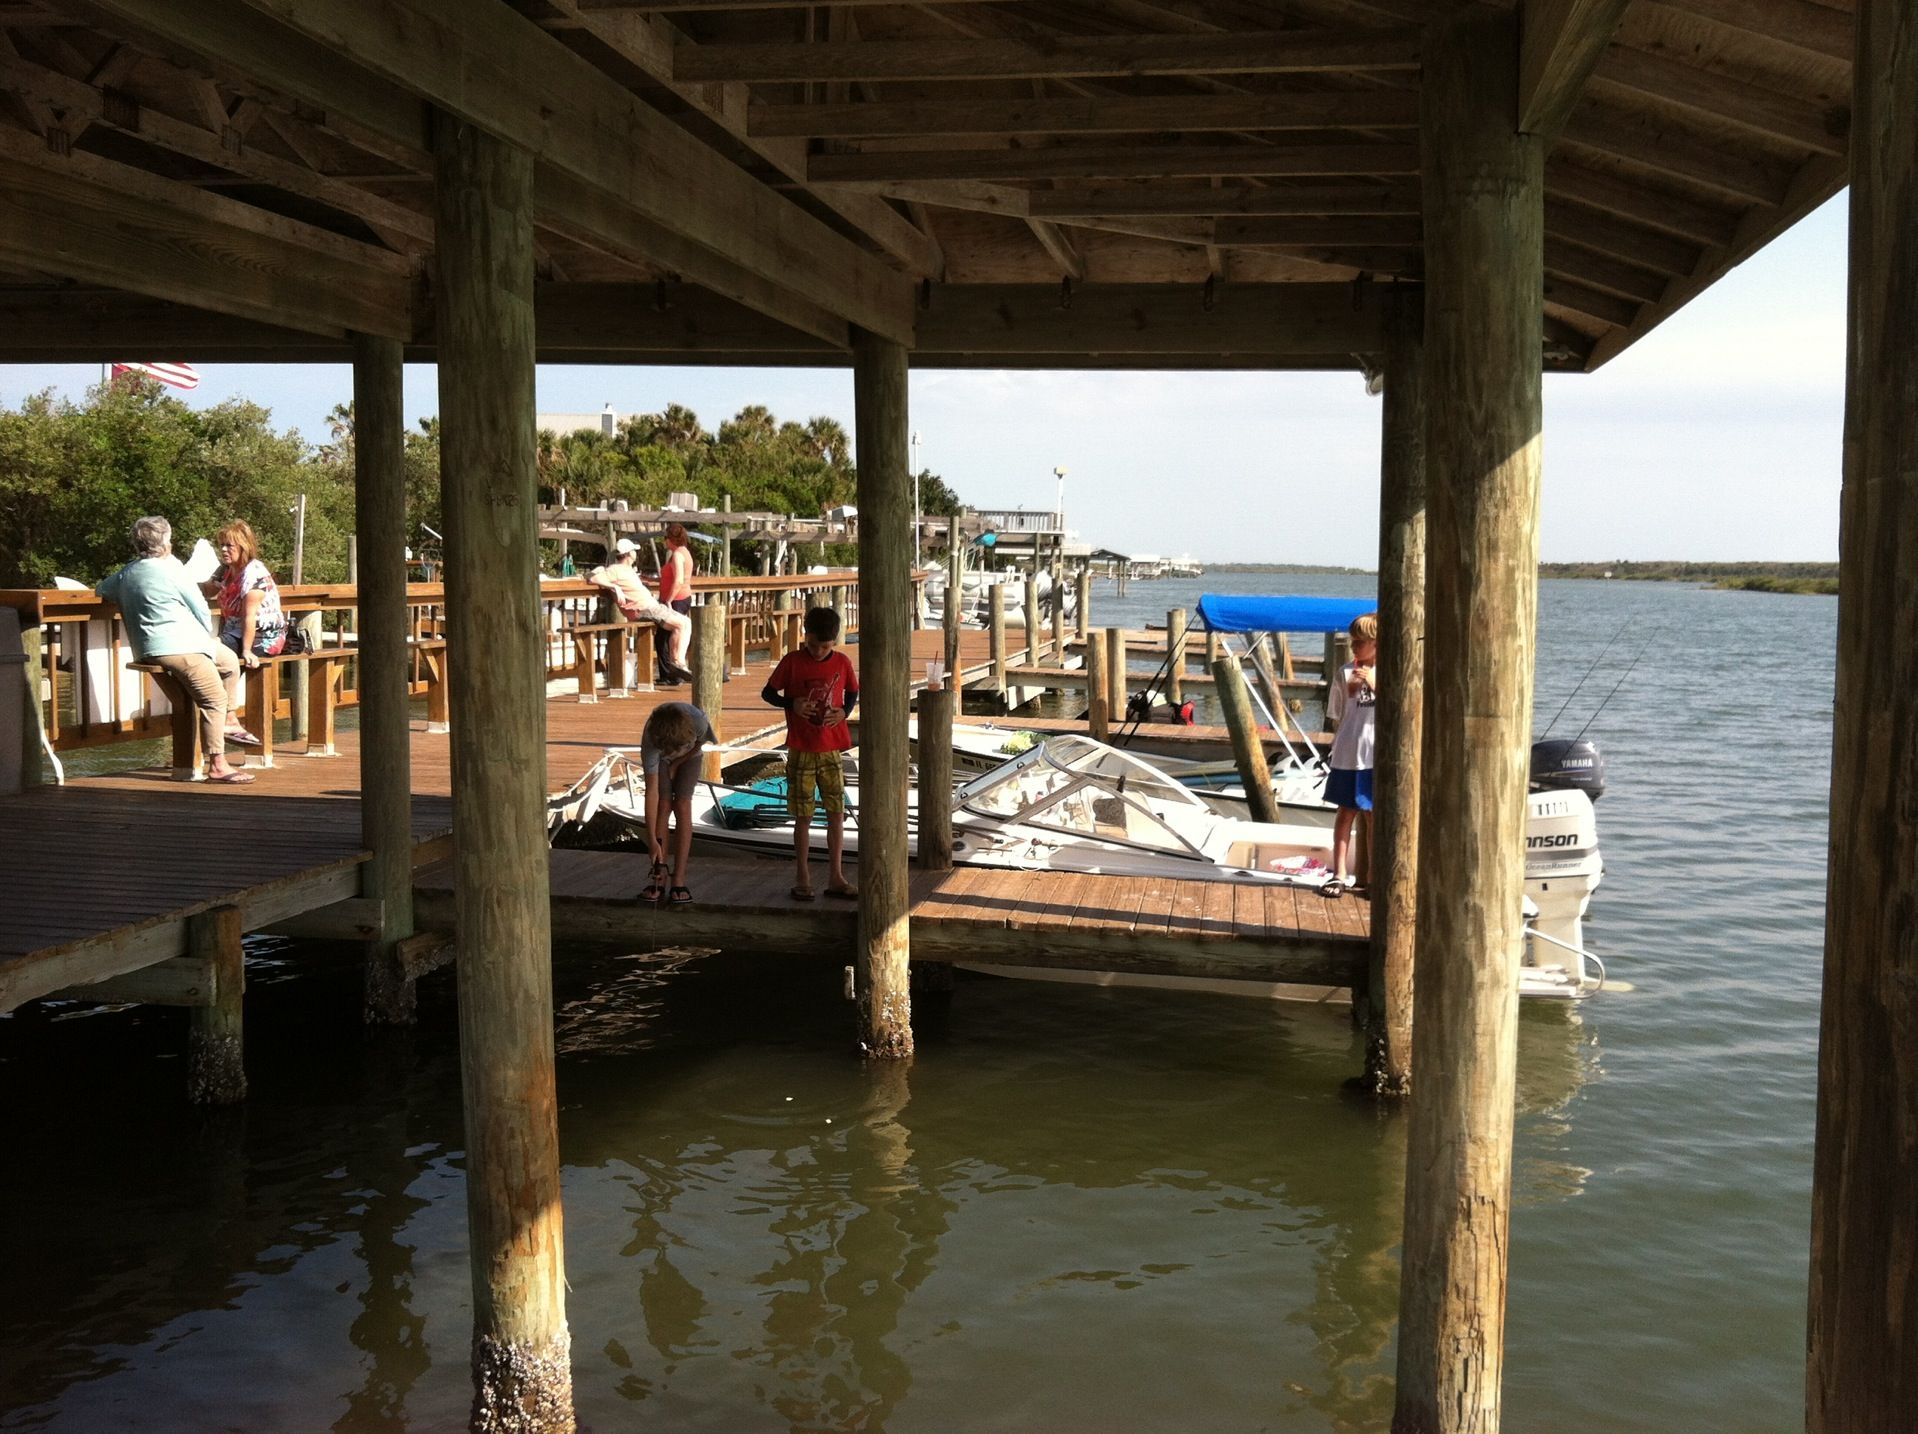 Not Only Can You Eat But Kayaks And Paddleboards At J B S Fish Camp In New Smyrna Beach Fl